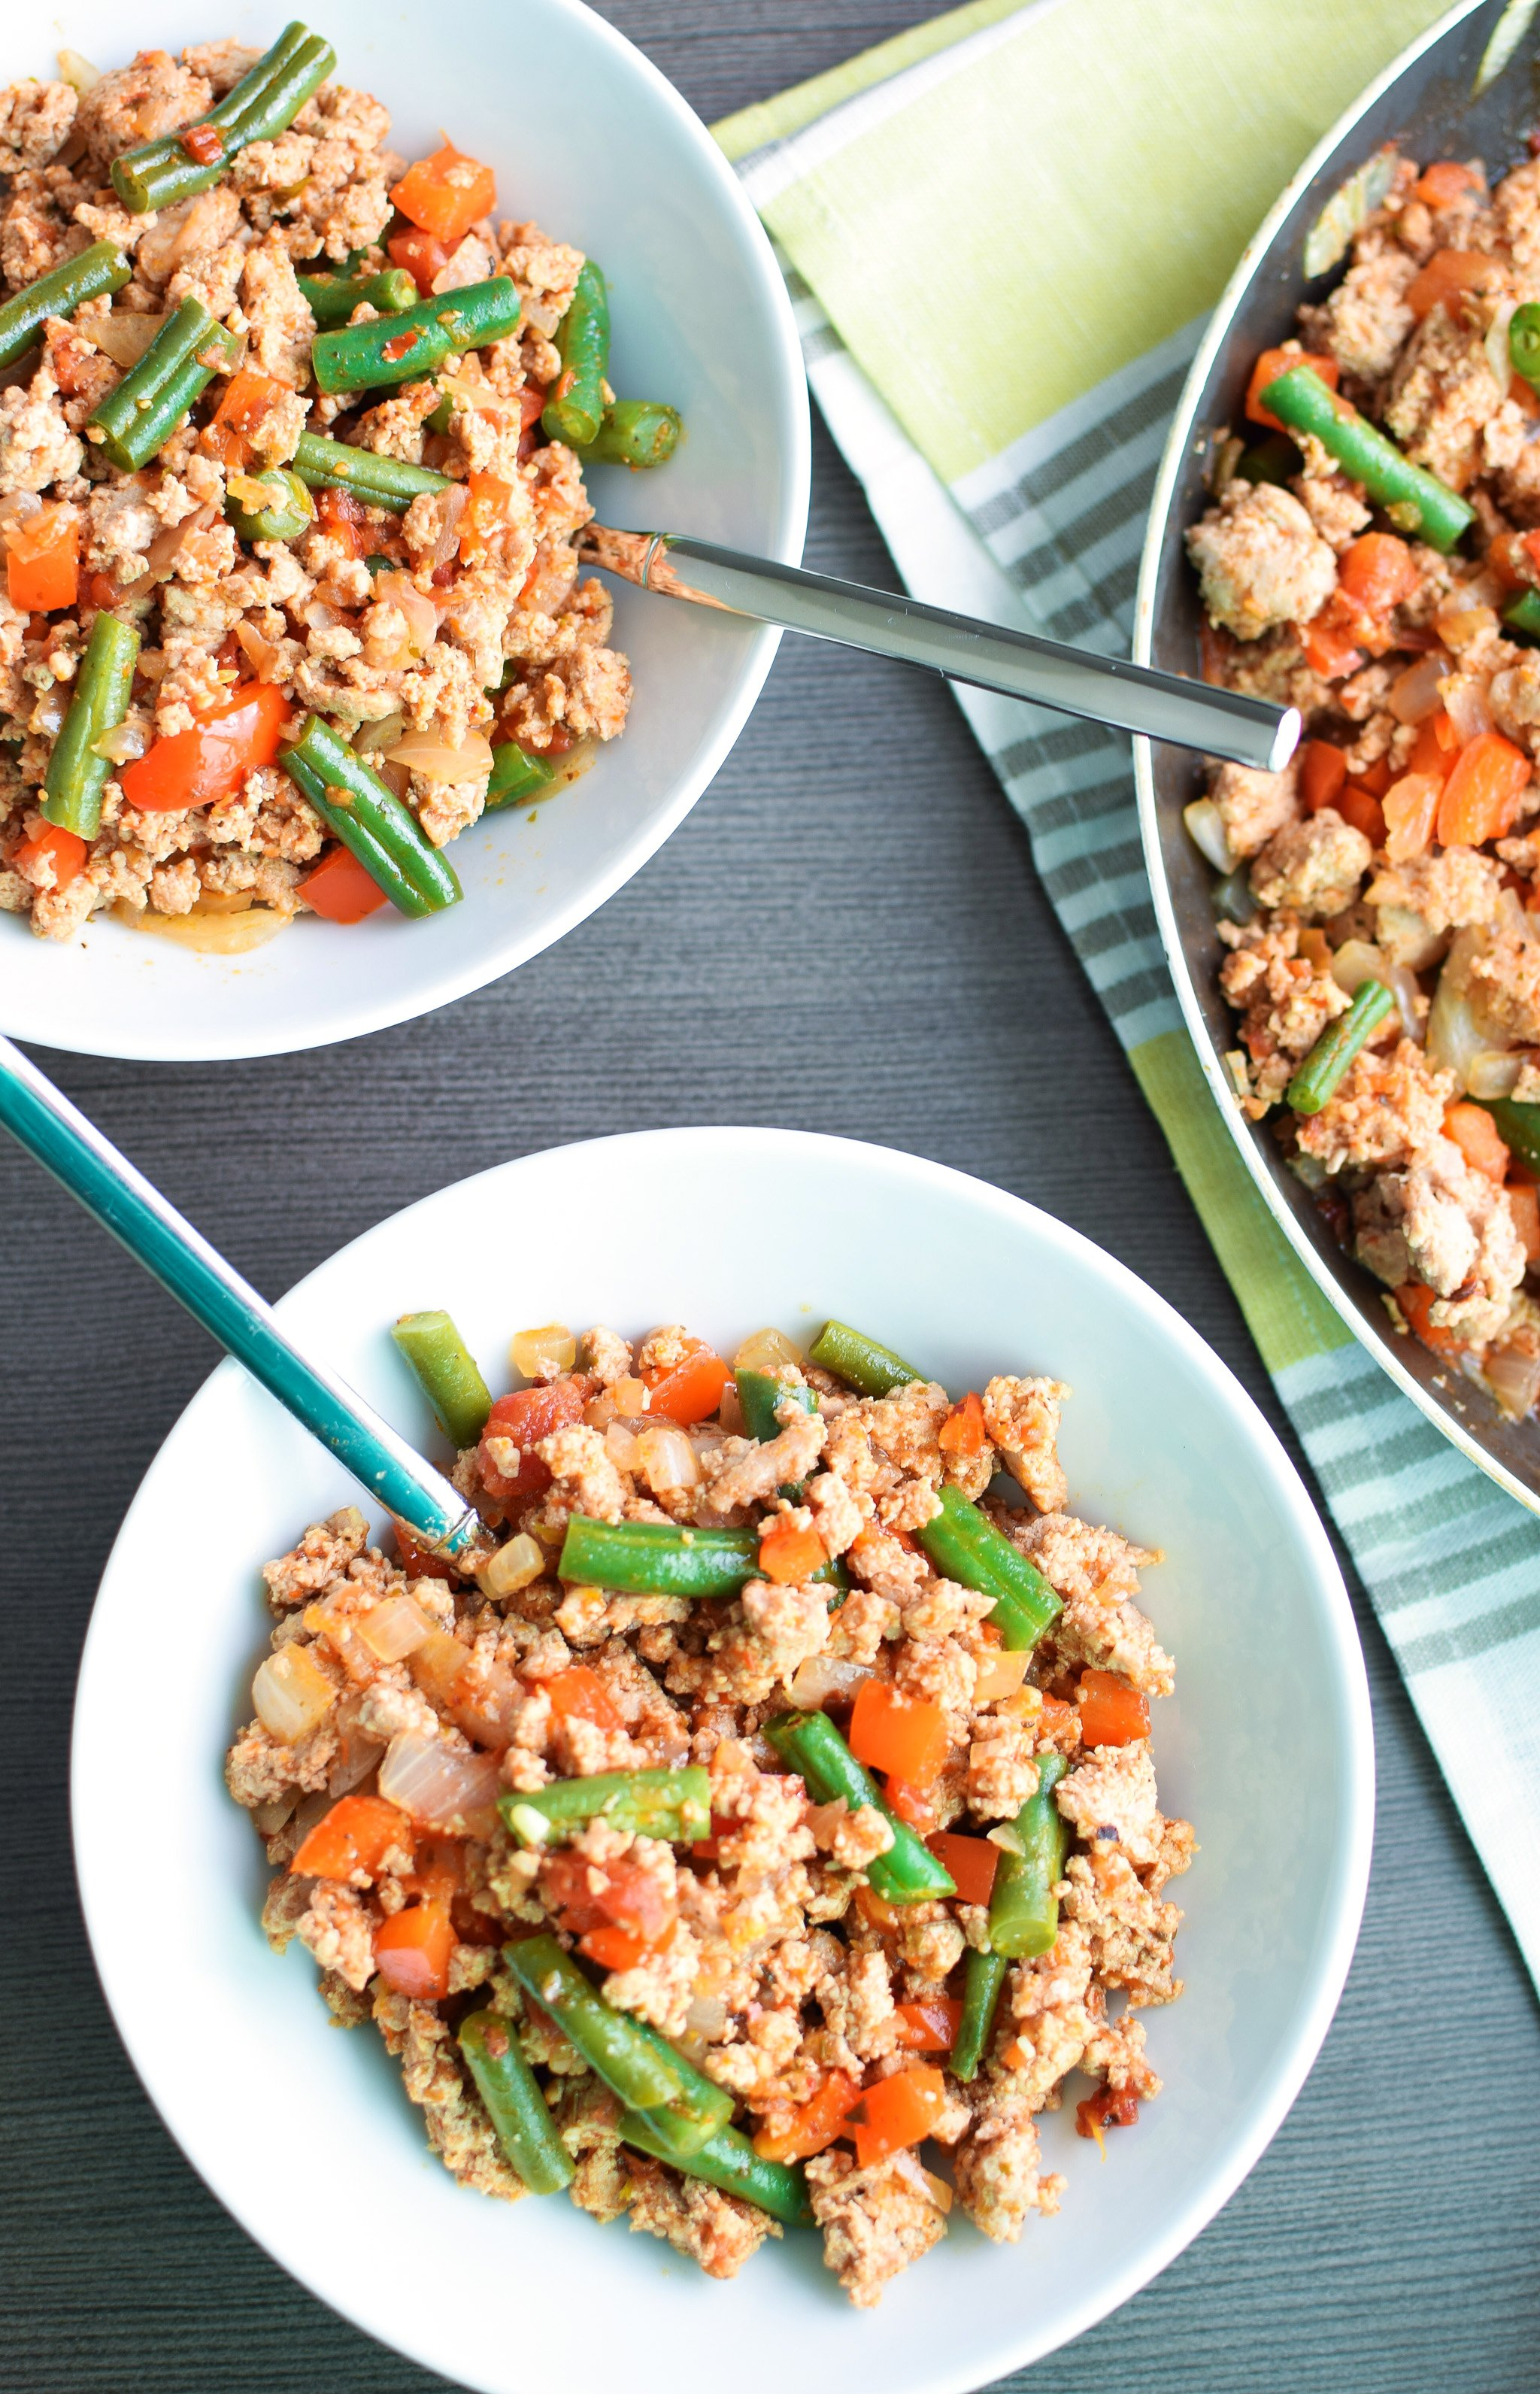 Servings of the Green Bean Turkey Skillet portioned into bowls from the skillet.